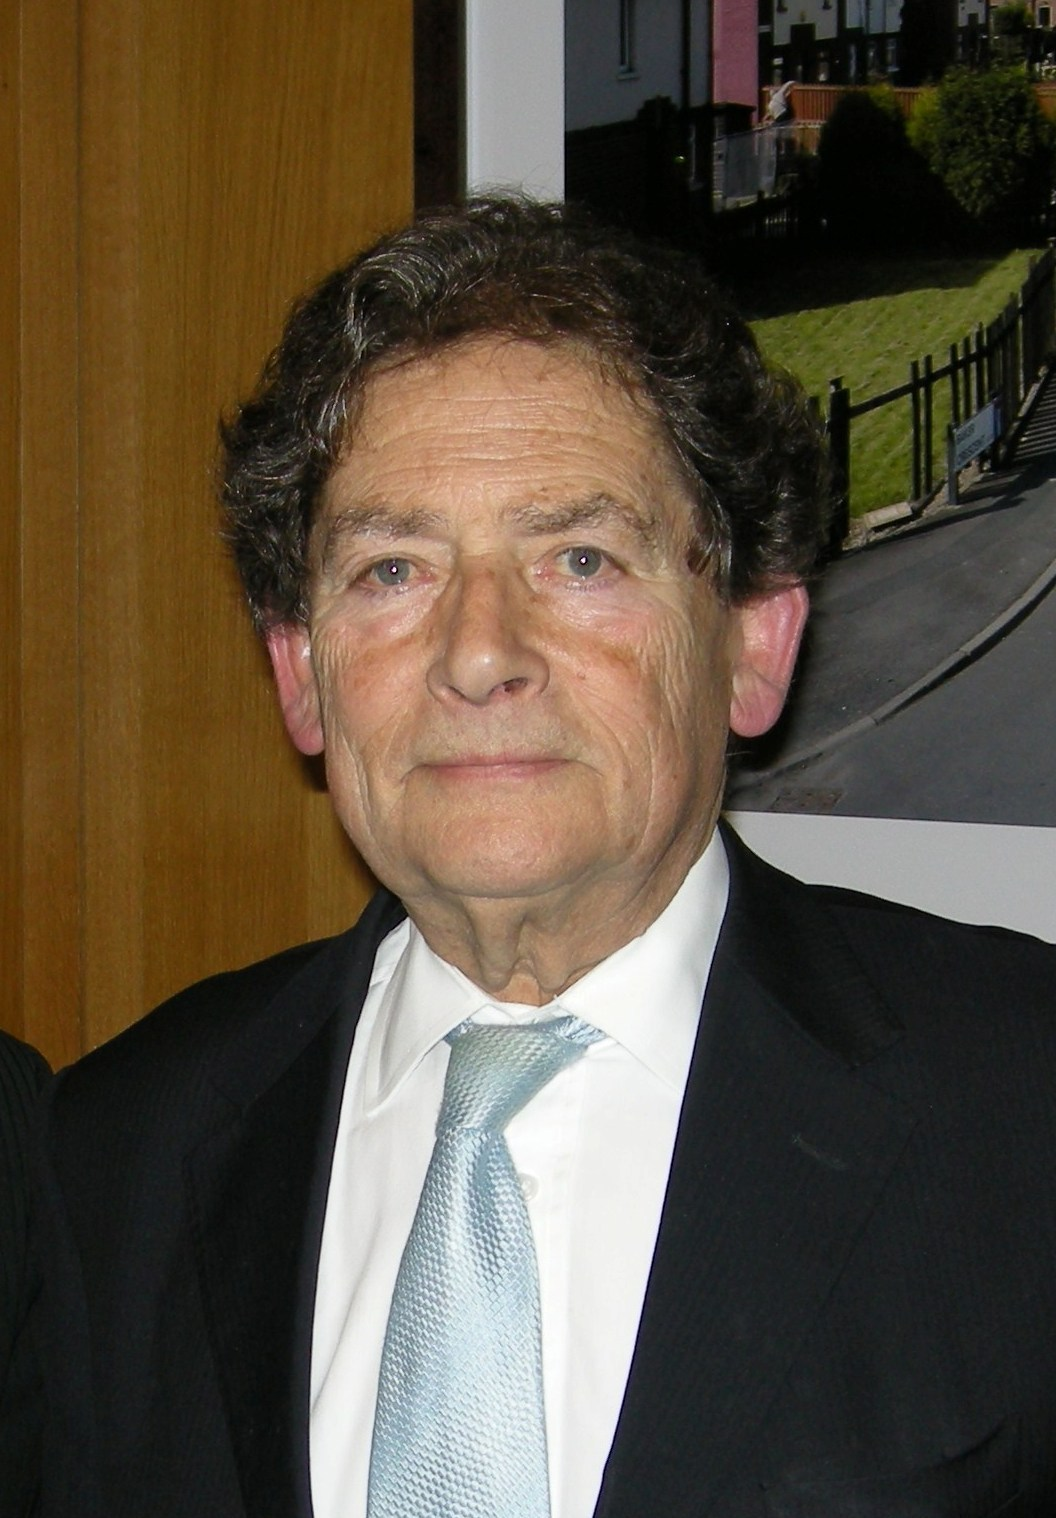 Nigel Lawson – Wikipedia